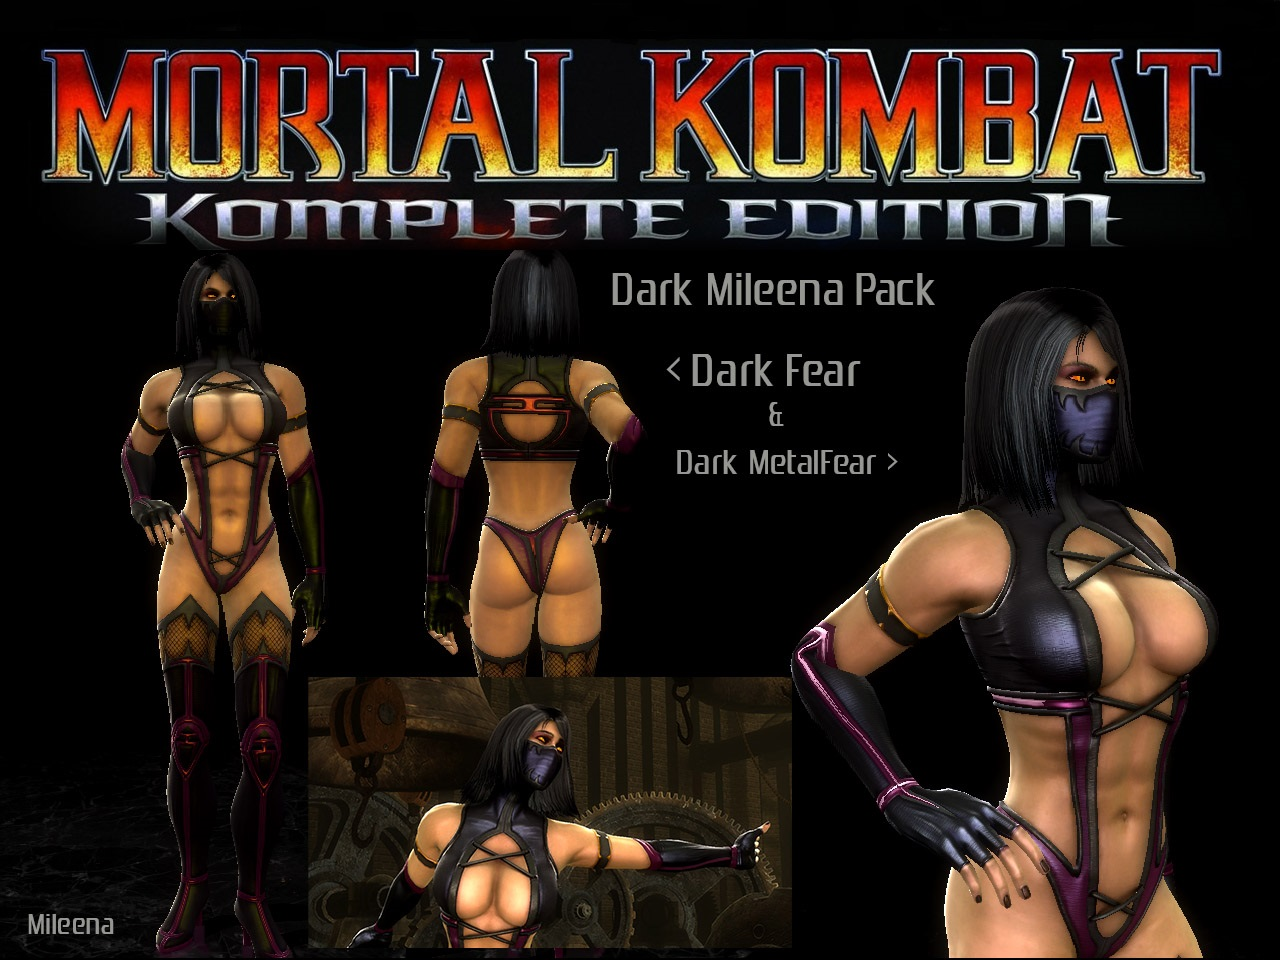 Mortal kombat komplete edition sex porncraft vids